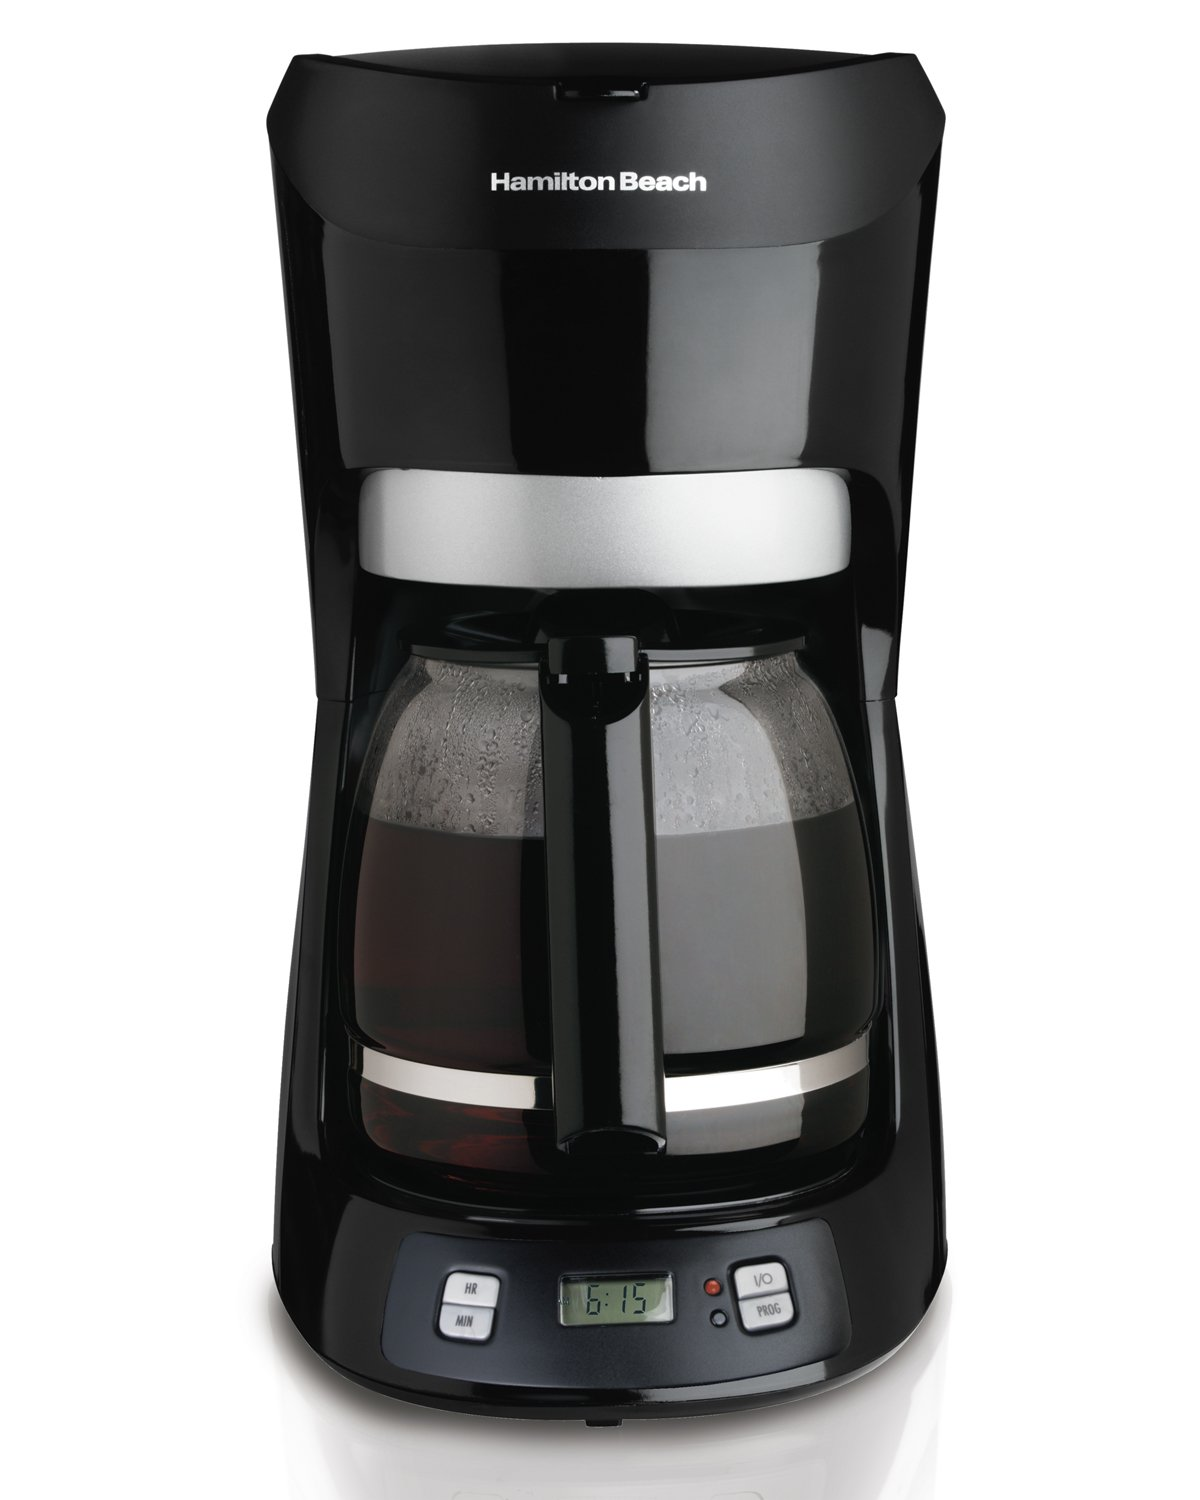 Amazon.com: Hamilton Beach 12-Cup Coffee Maker with Digital Clock (49467): Coffee  Makers For Home: Kitchen & Dining